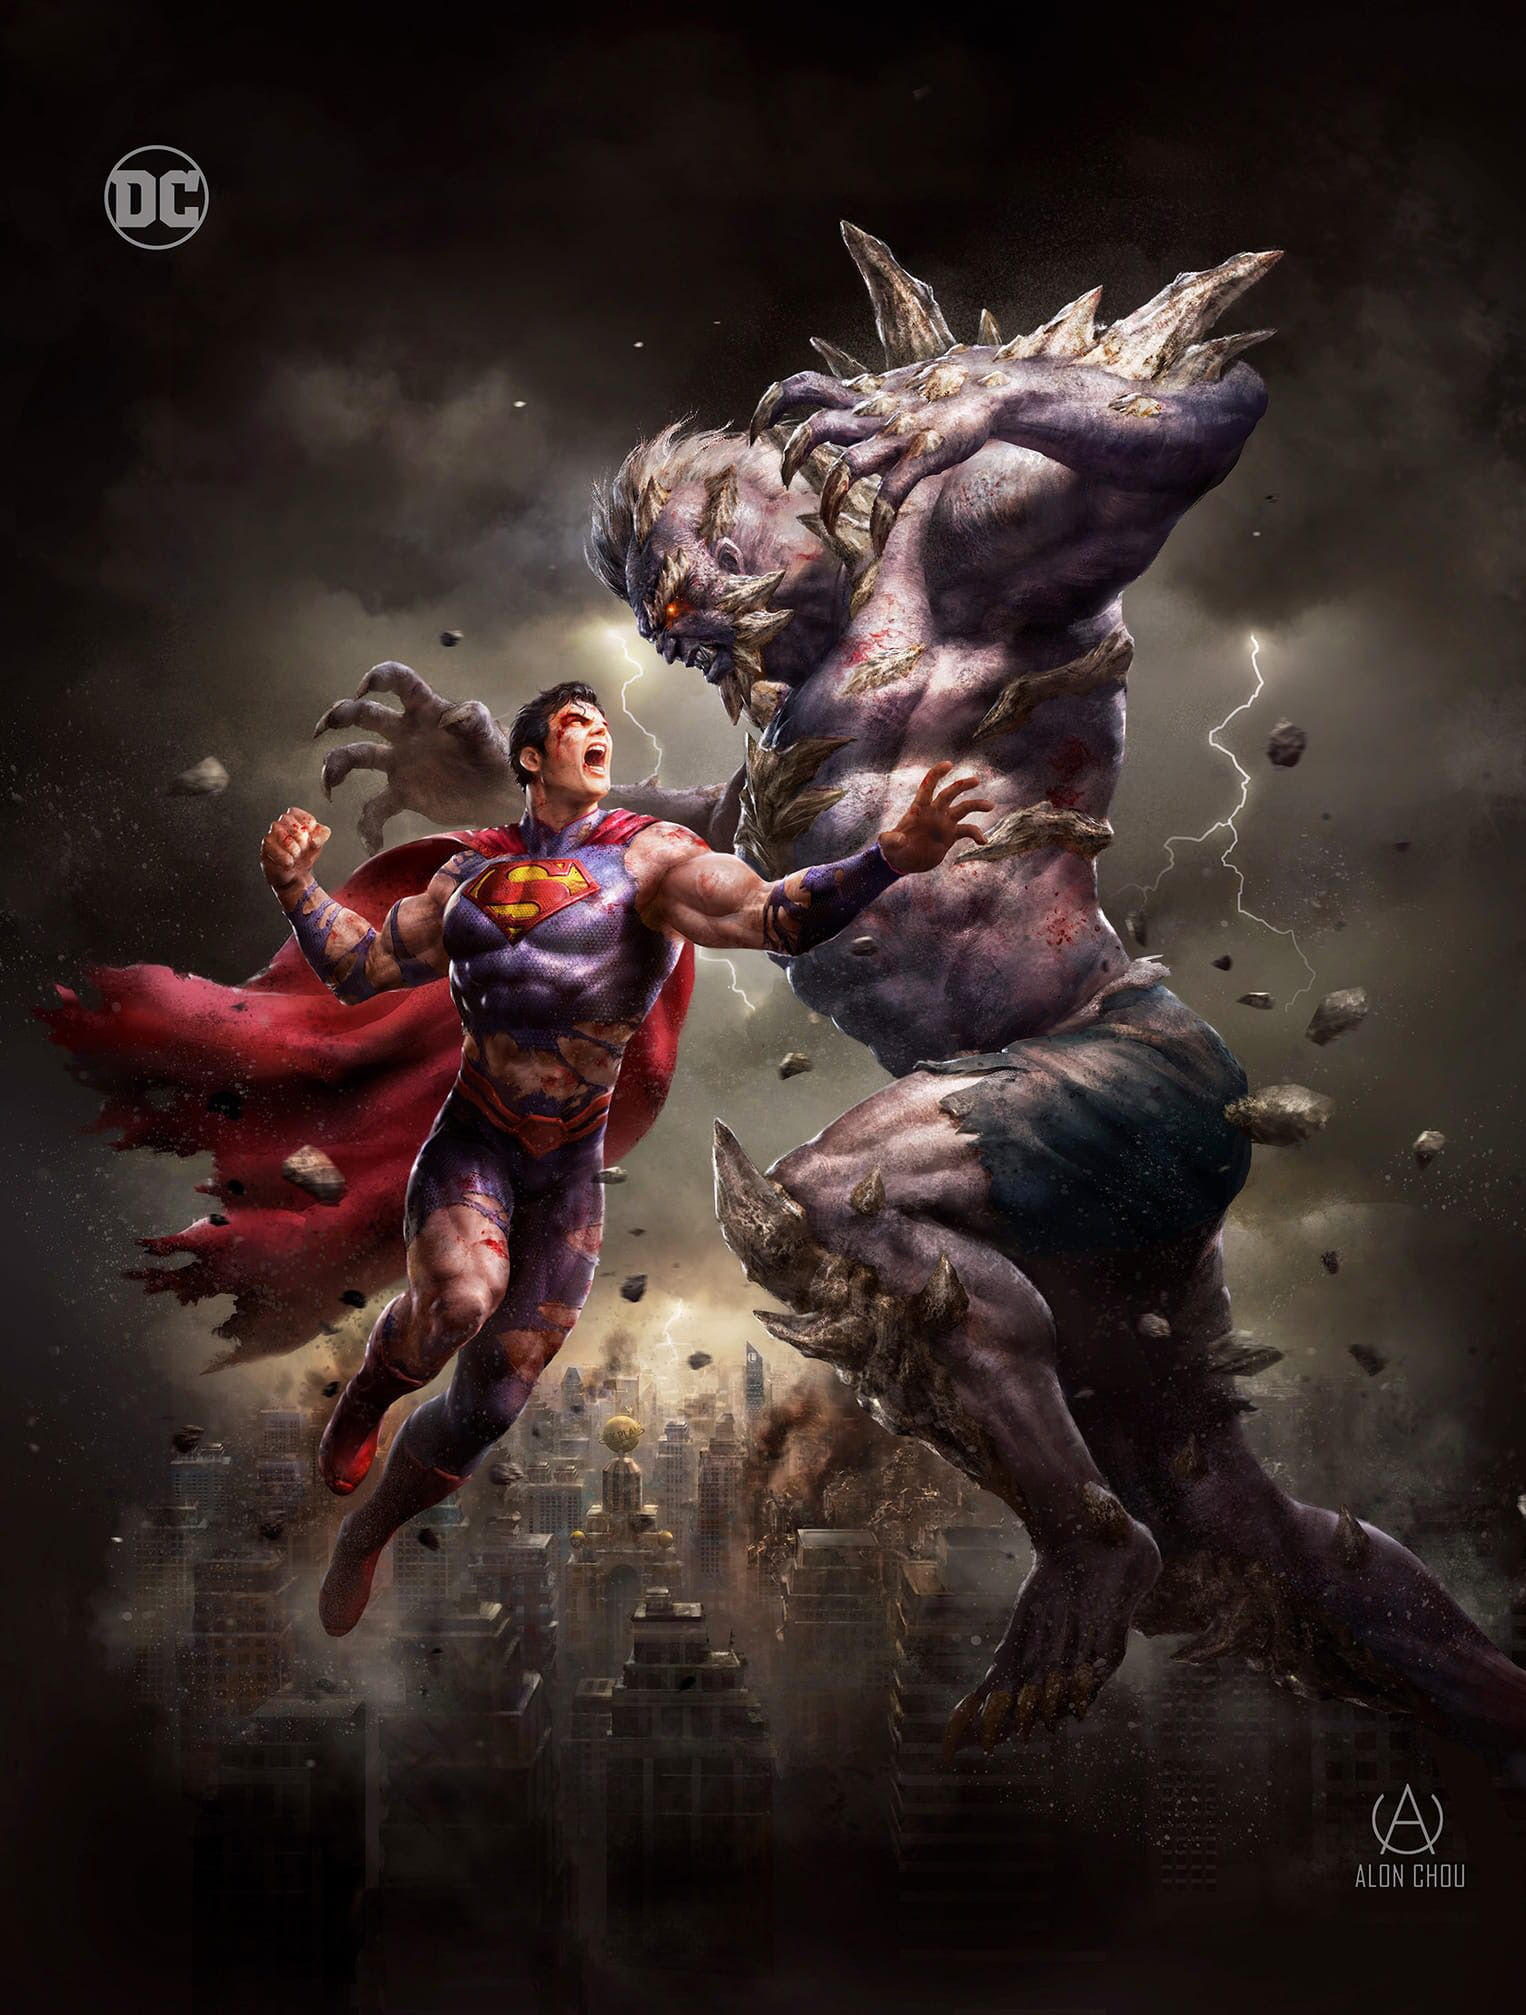 Dc Comic Book Artwork Superman Vs Doomsday By Alon Choa We